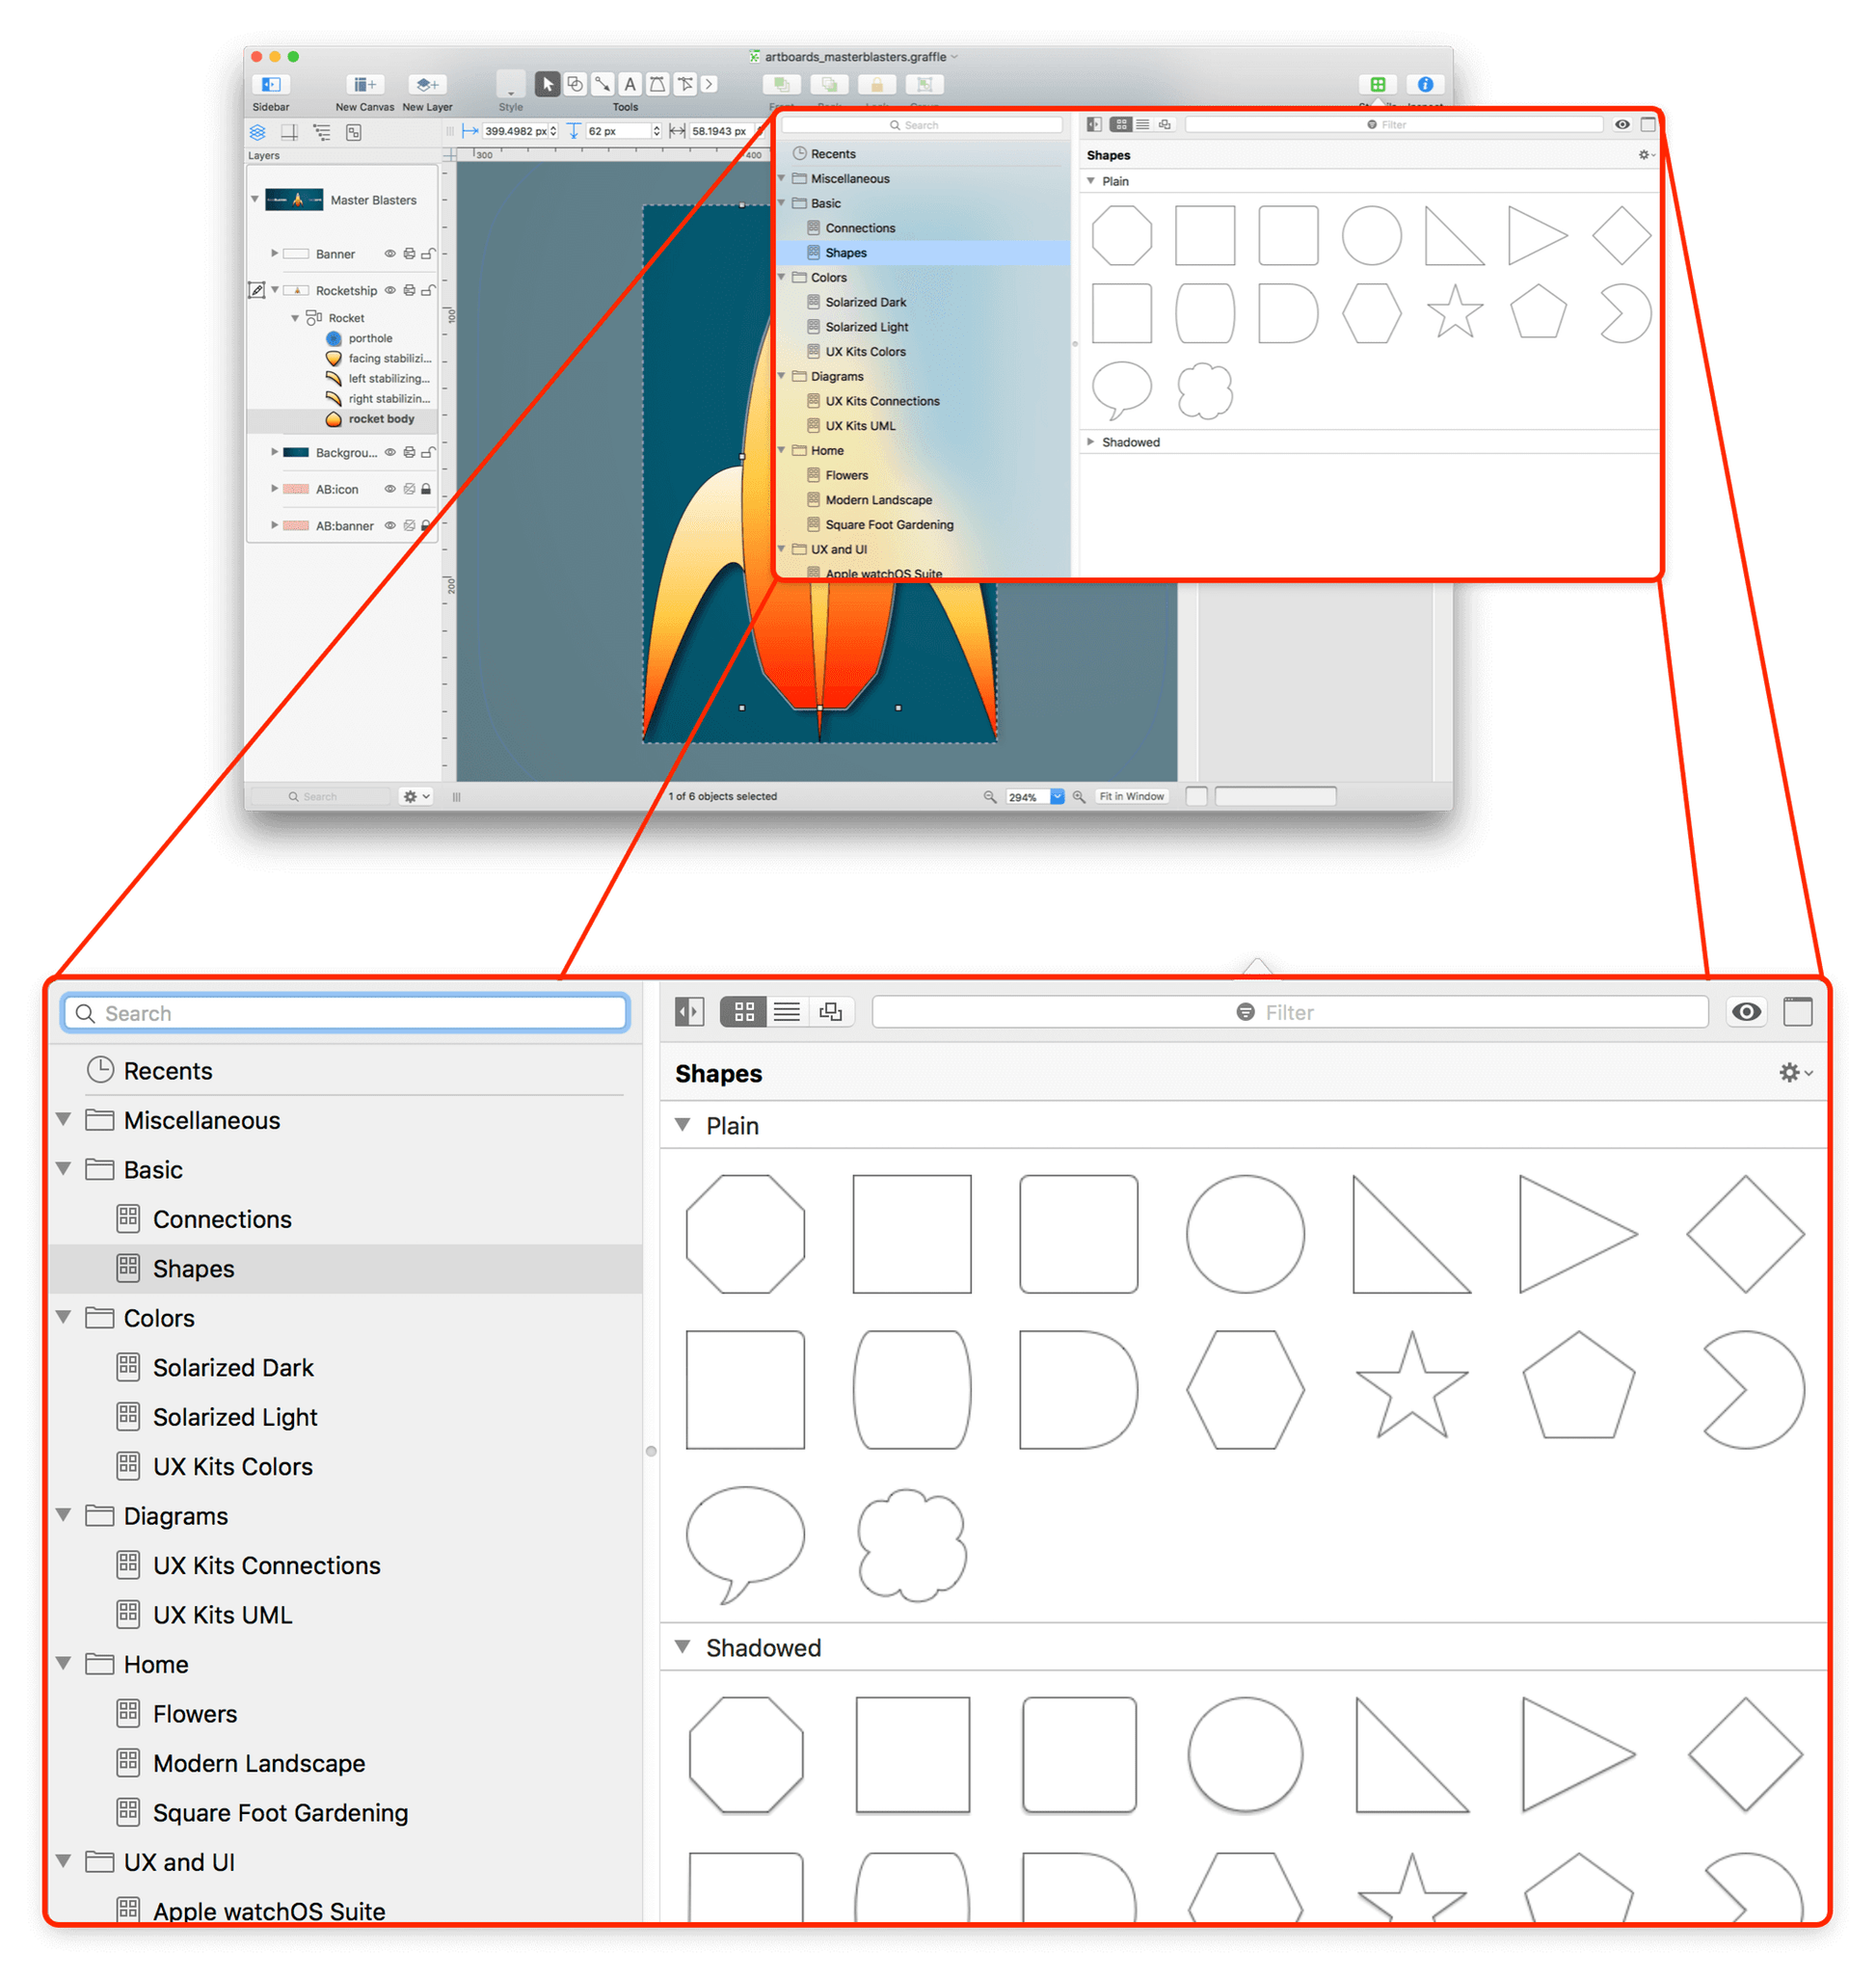 An exploding view of OmniGraffle, showing the Stencil Browser in a popup window available from the toolbar, shown in a much larger scale than in the full window in the background.